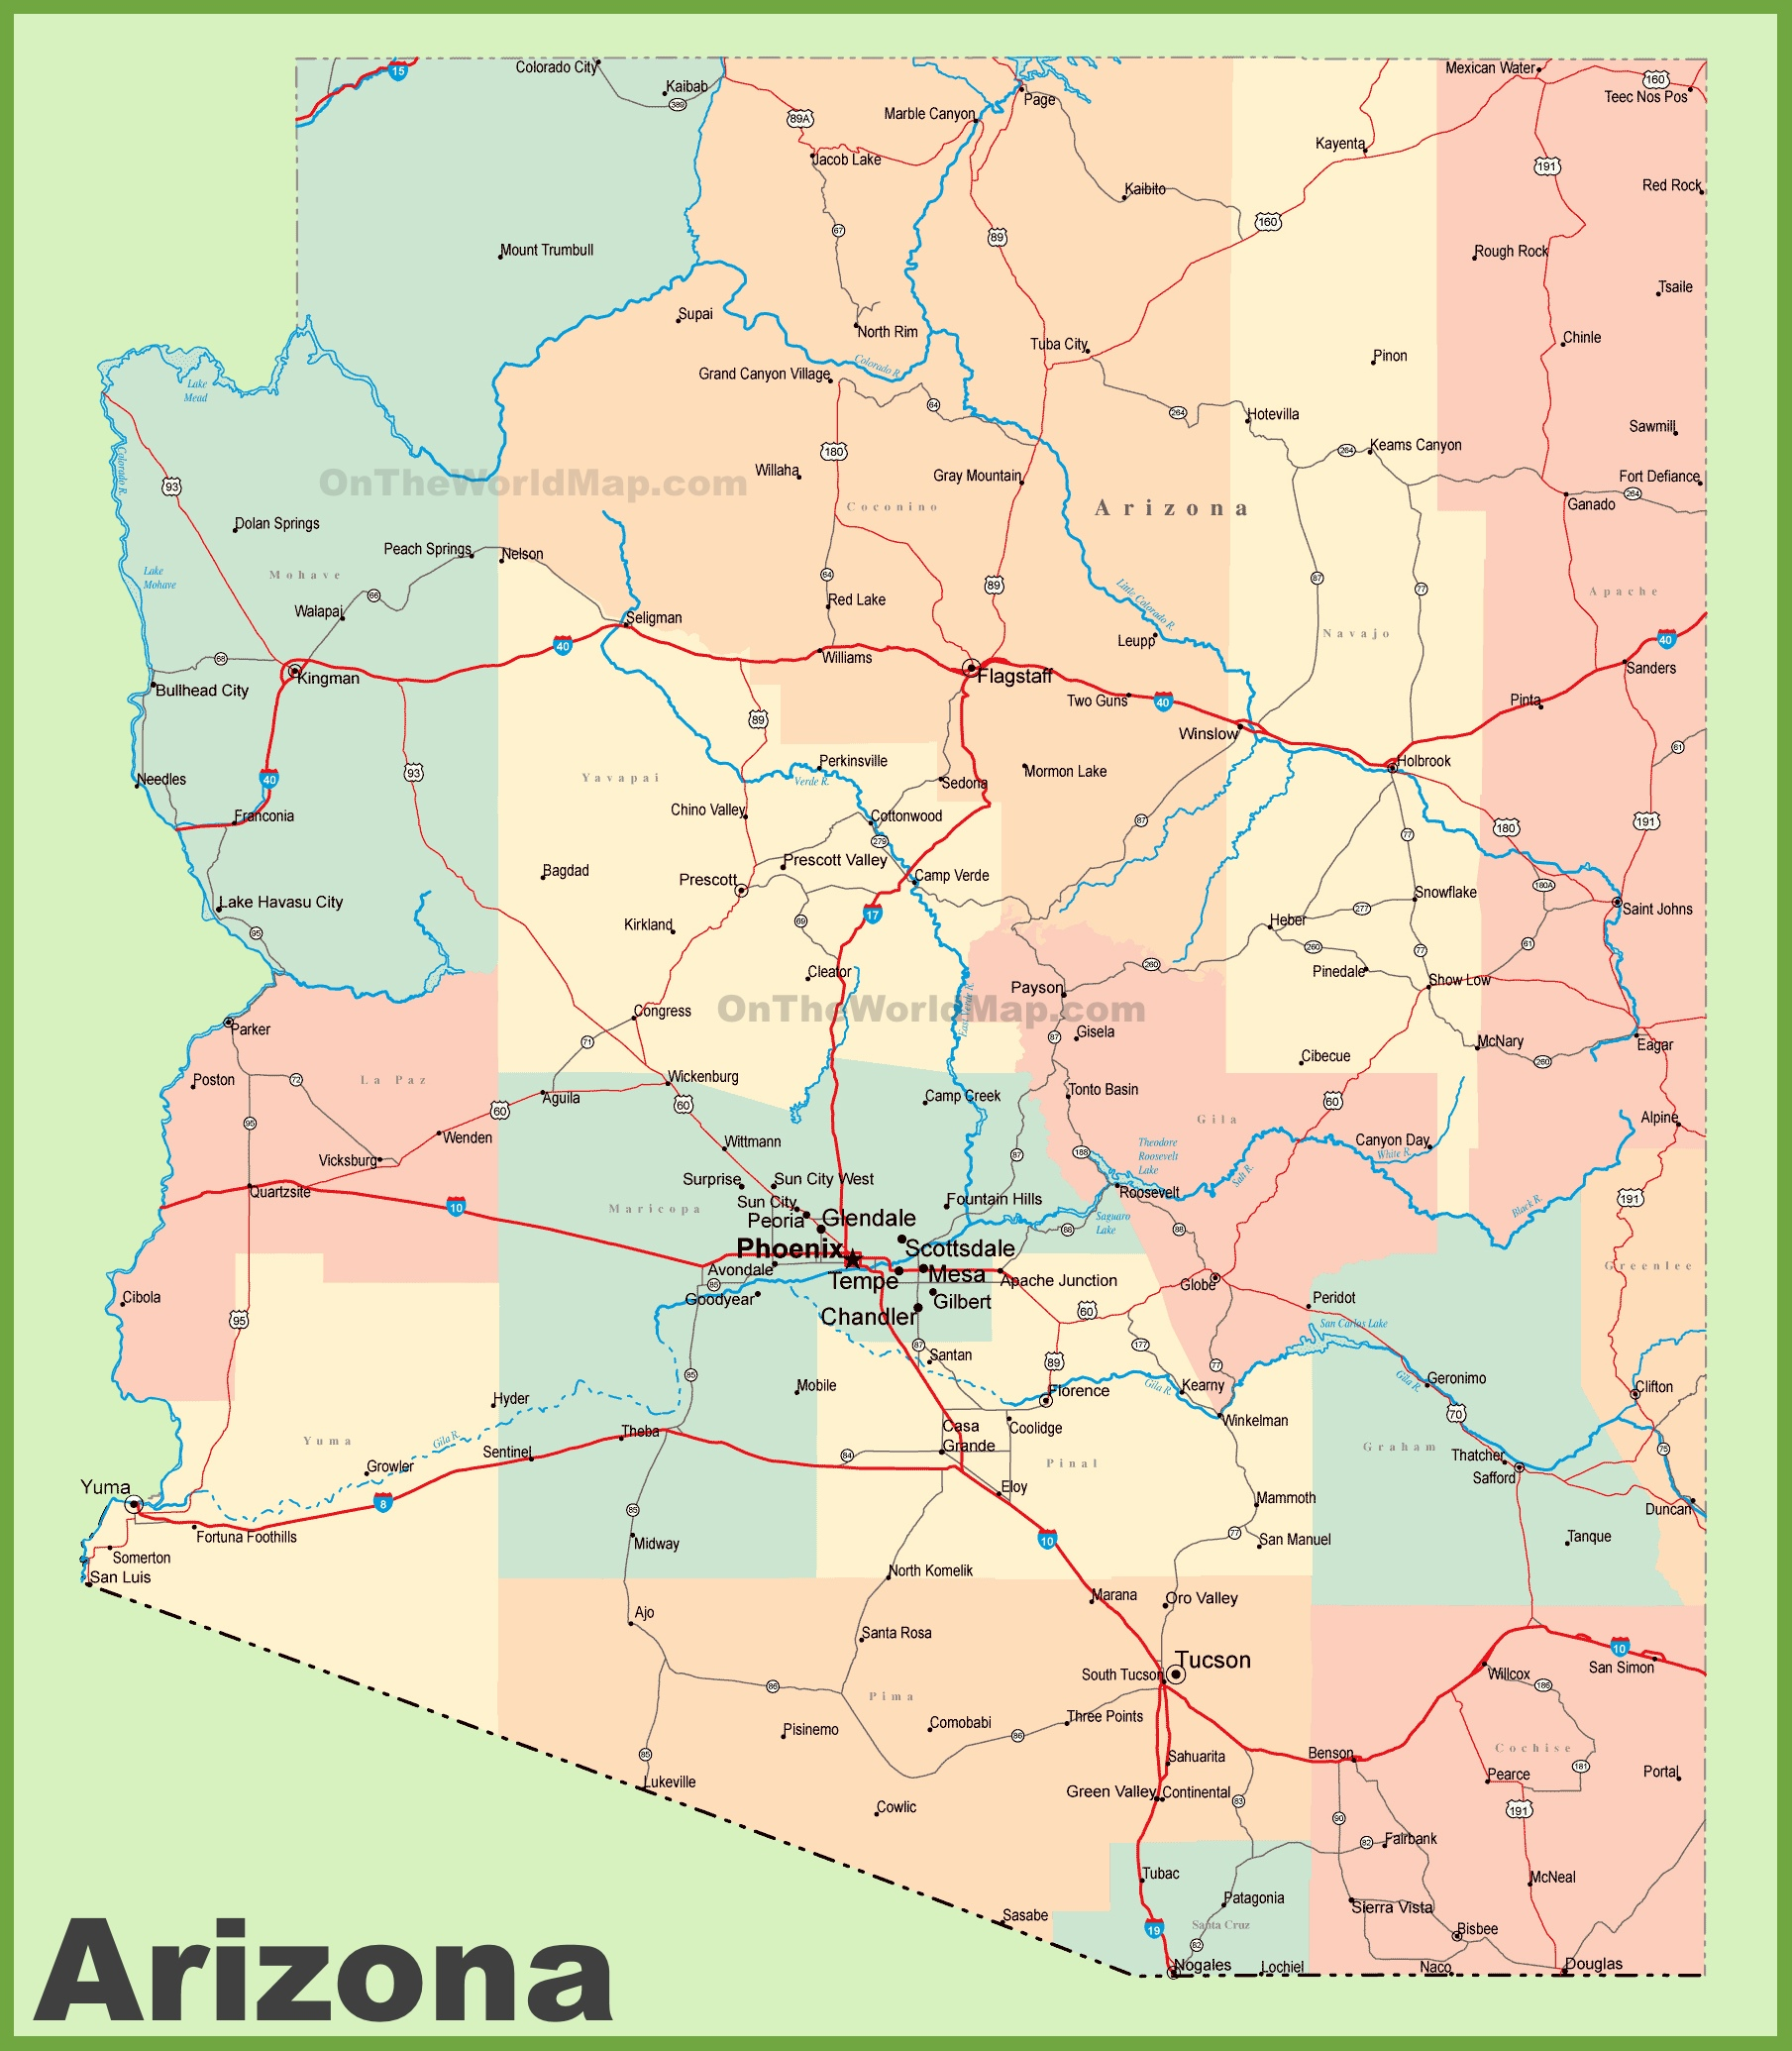 Arizona Road Map With Cities And Towns - Map of arizona counties and cities